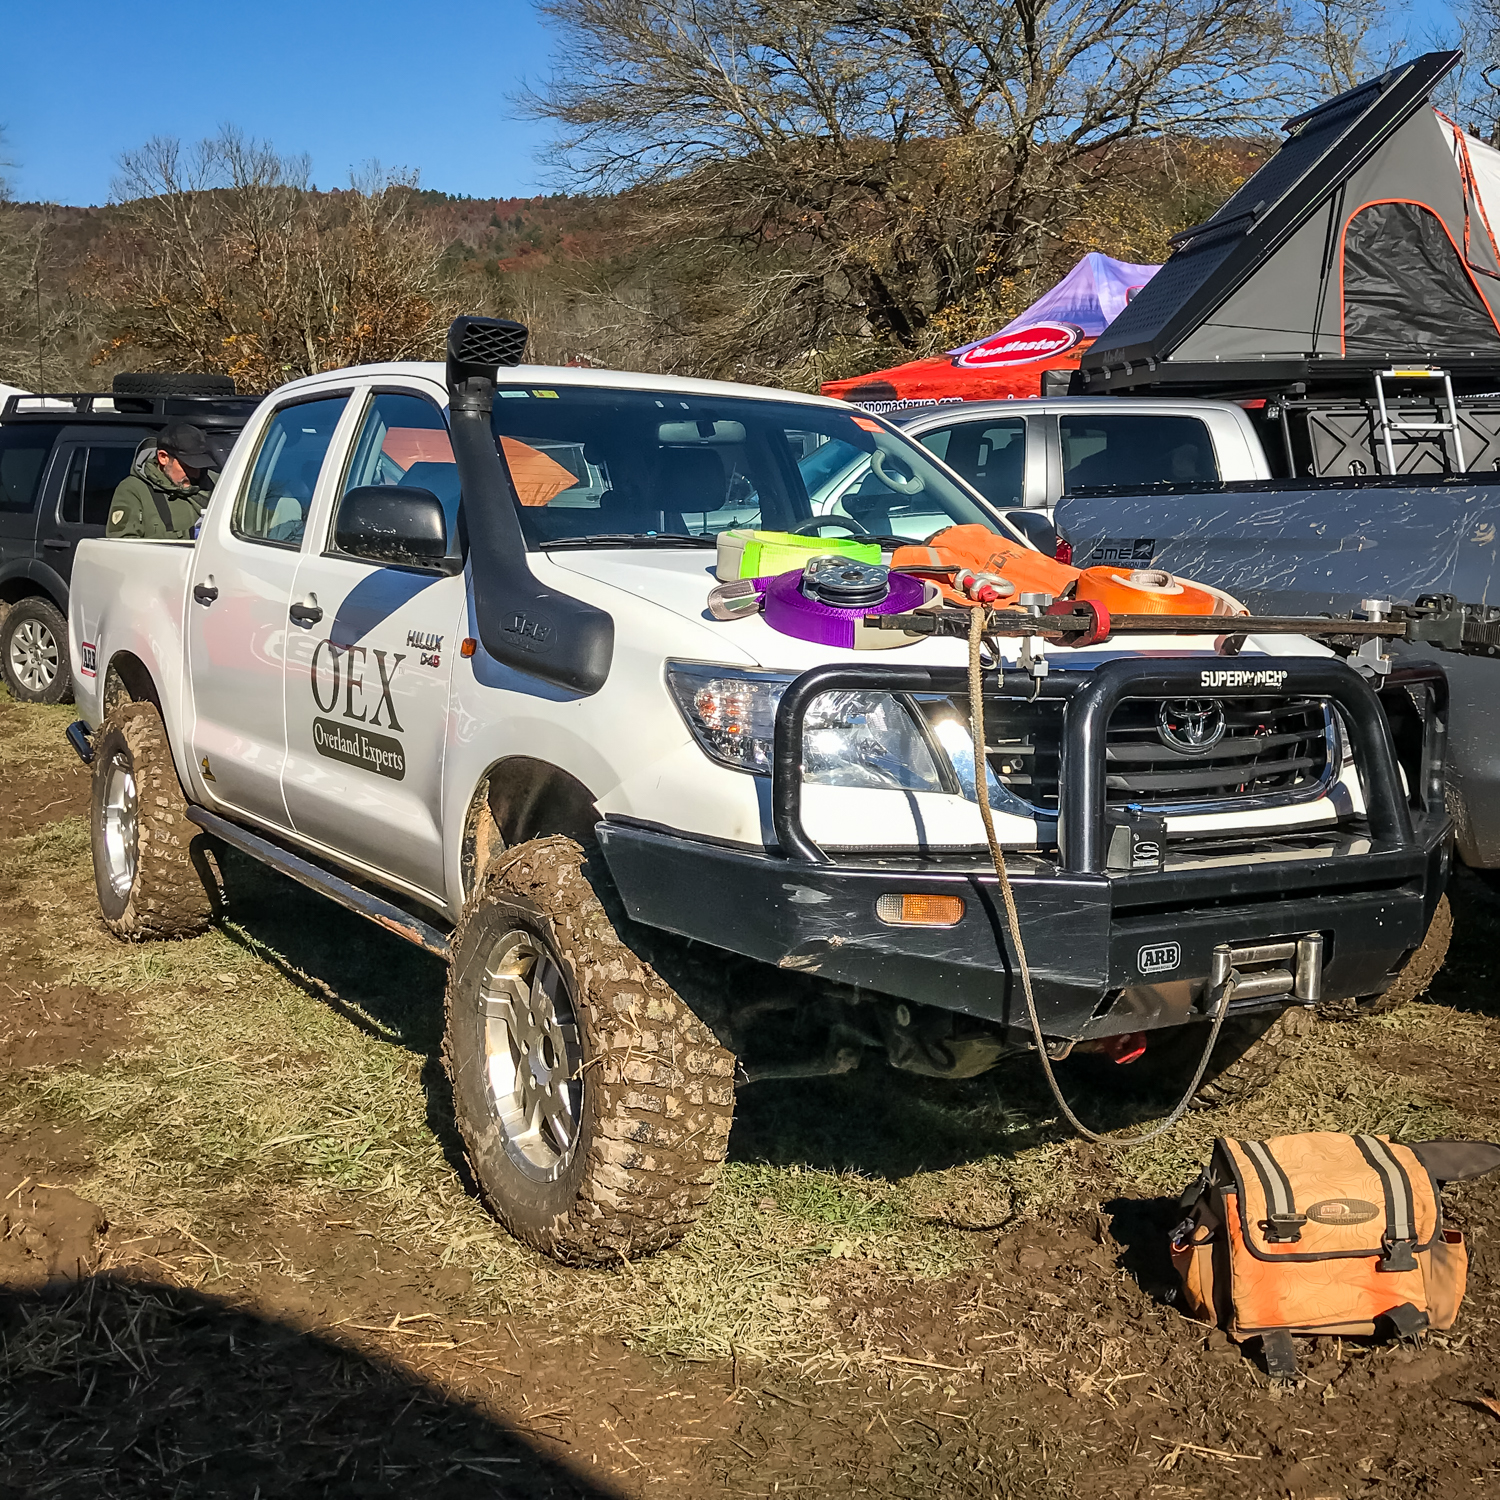 Overland Experts Hilux Gearjunkie